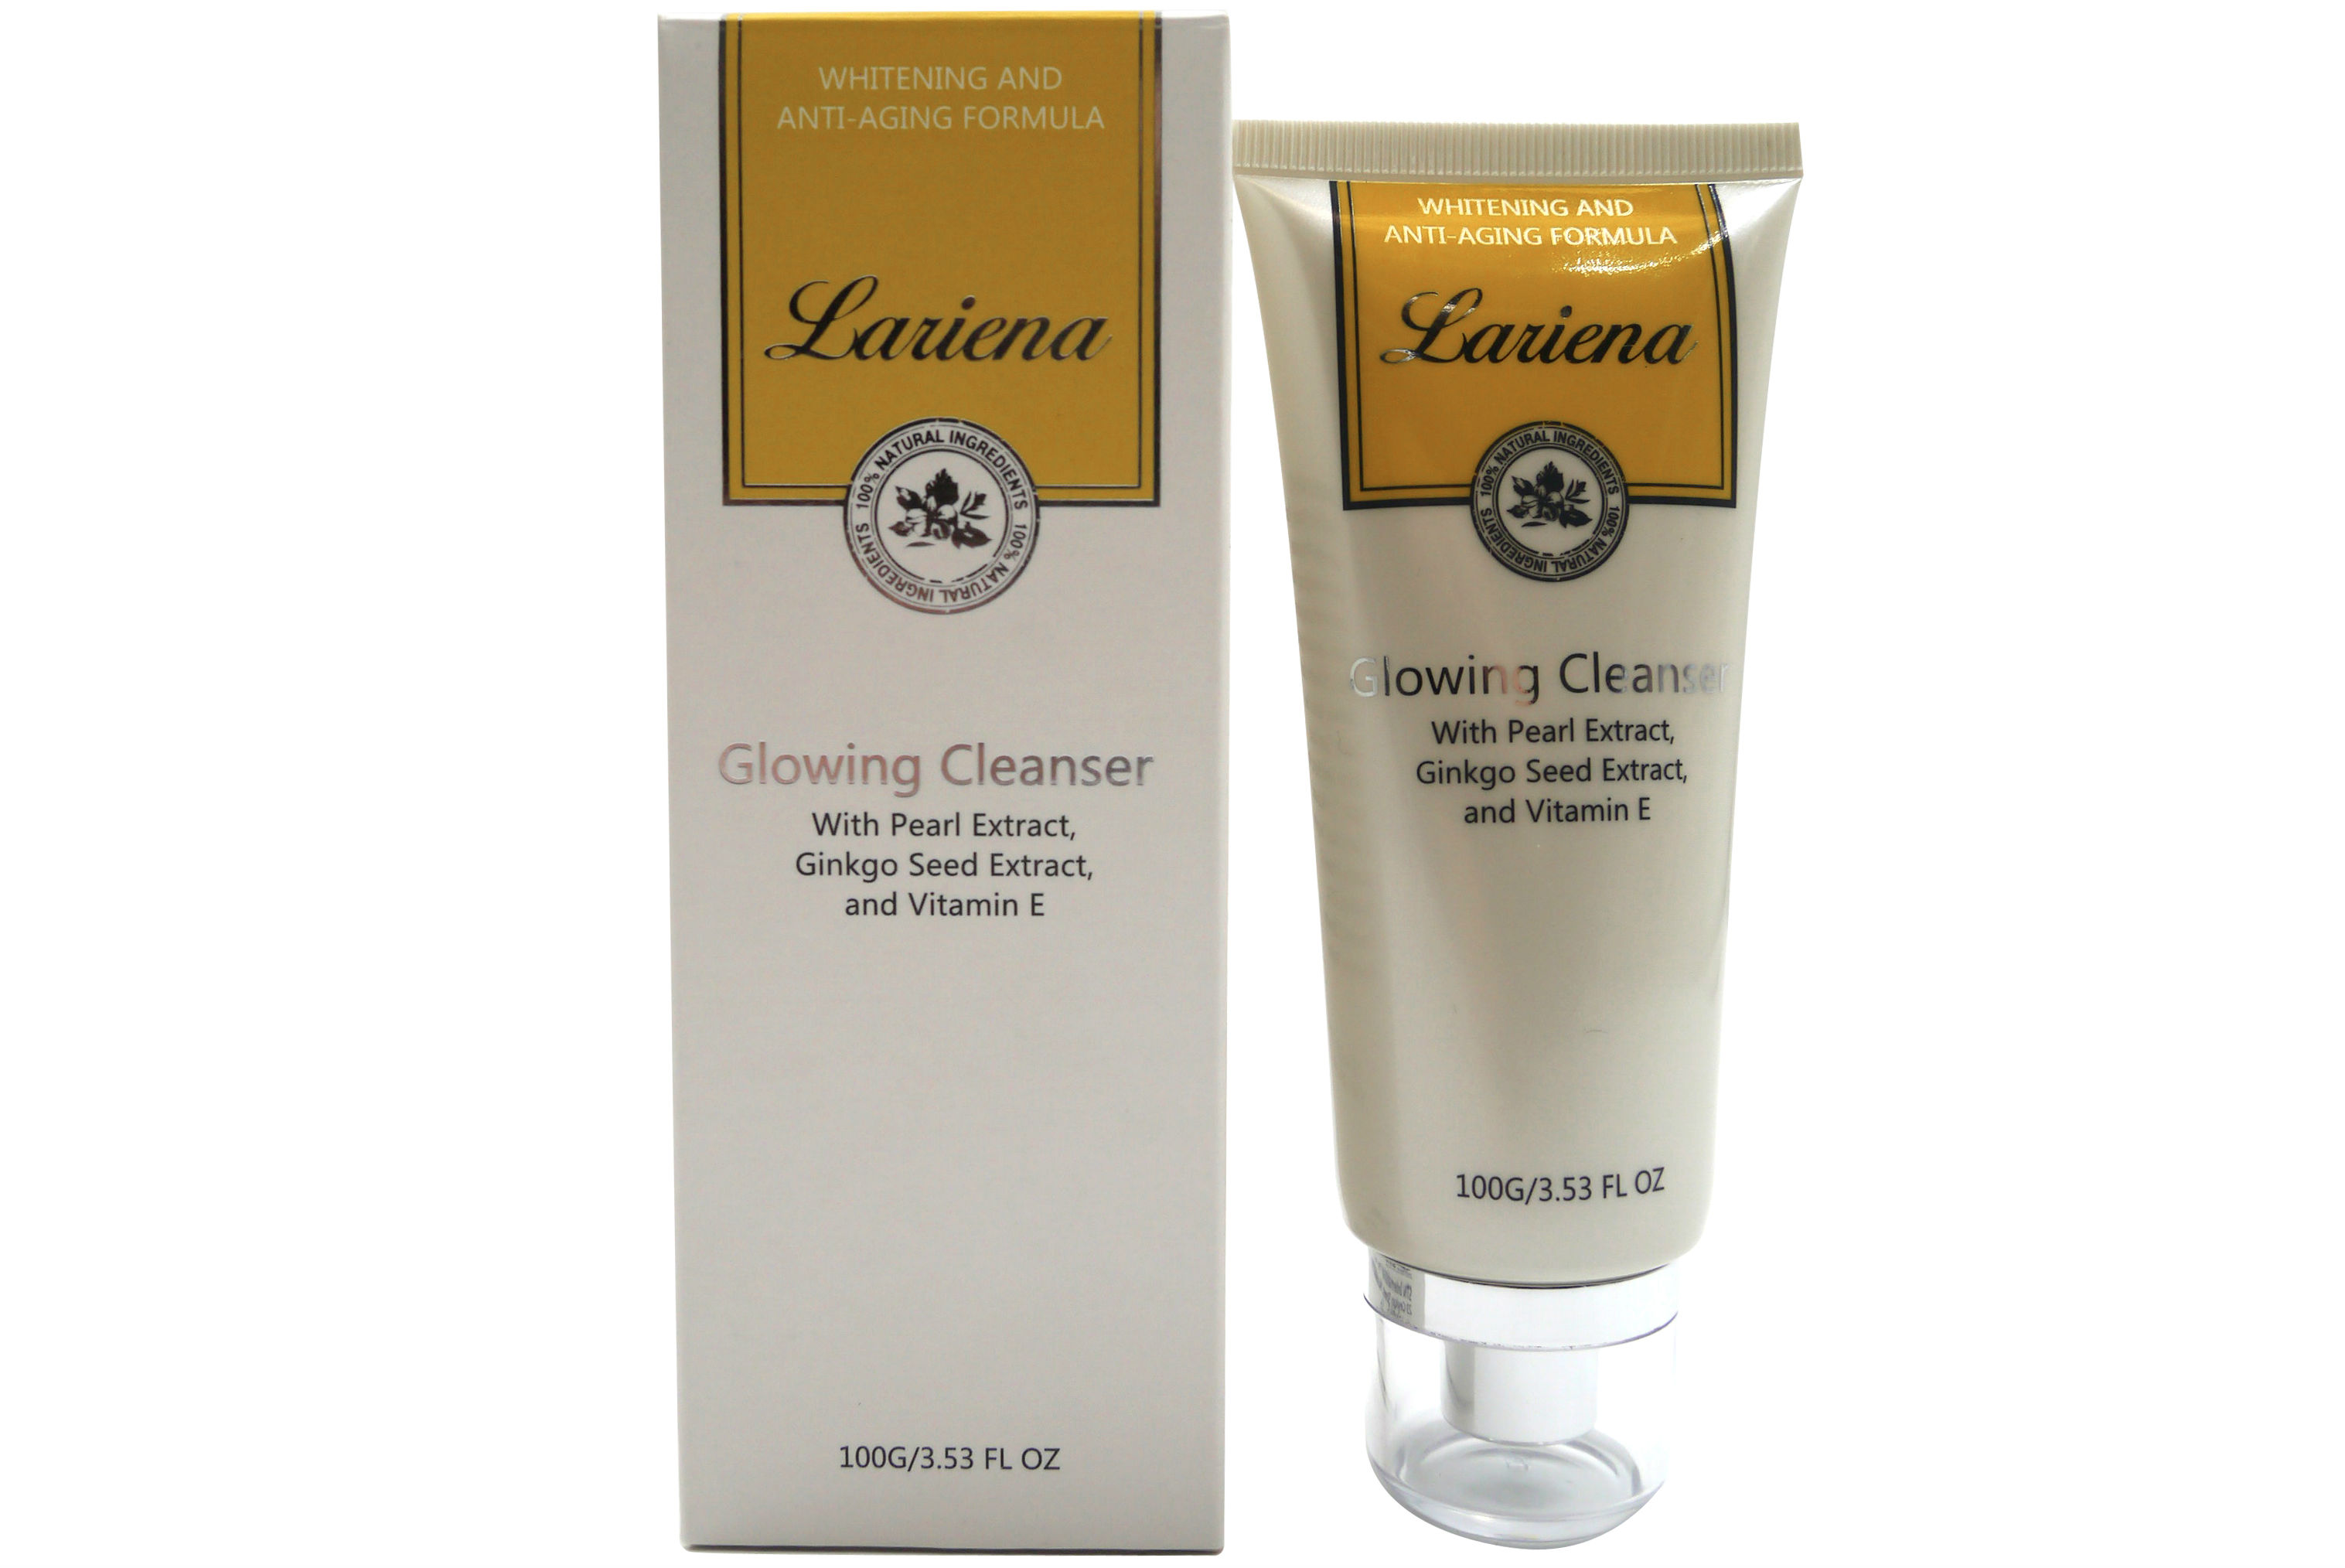 lariena-glowing-cleanser